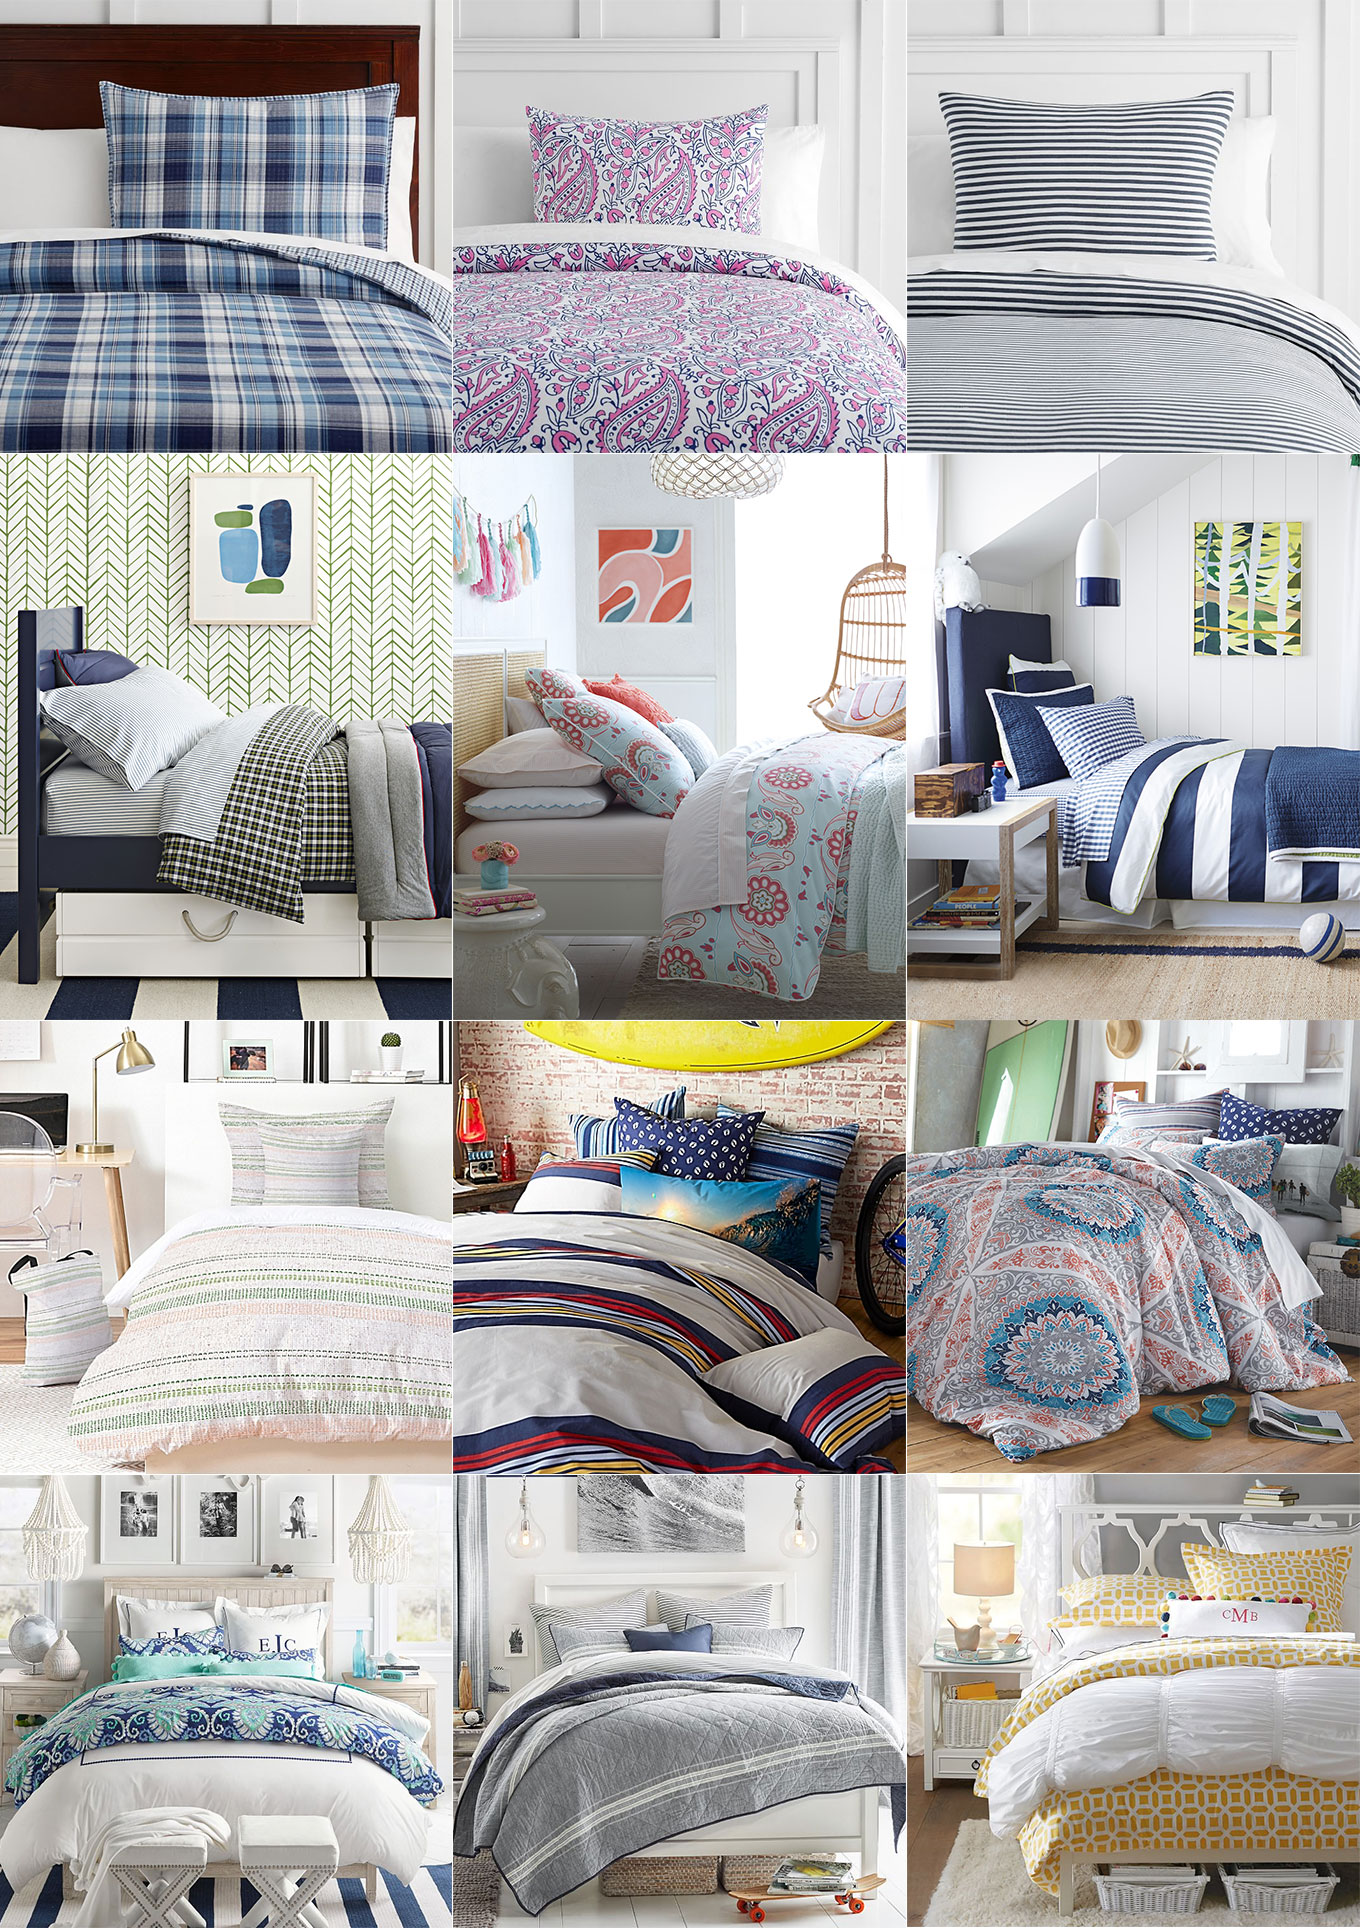 Ridgely Brode is looking for bedding for her sons for their dorm life and finds a options for both girls and boys on her blog, Ridgely's Radar.